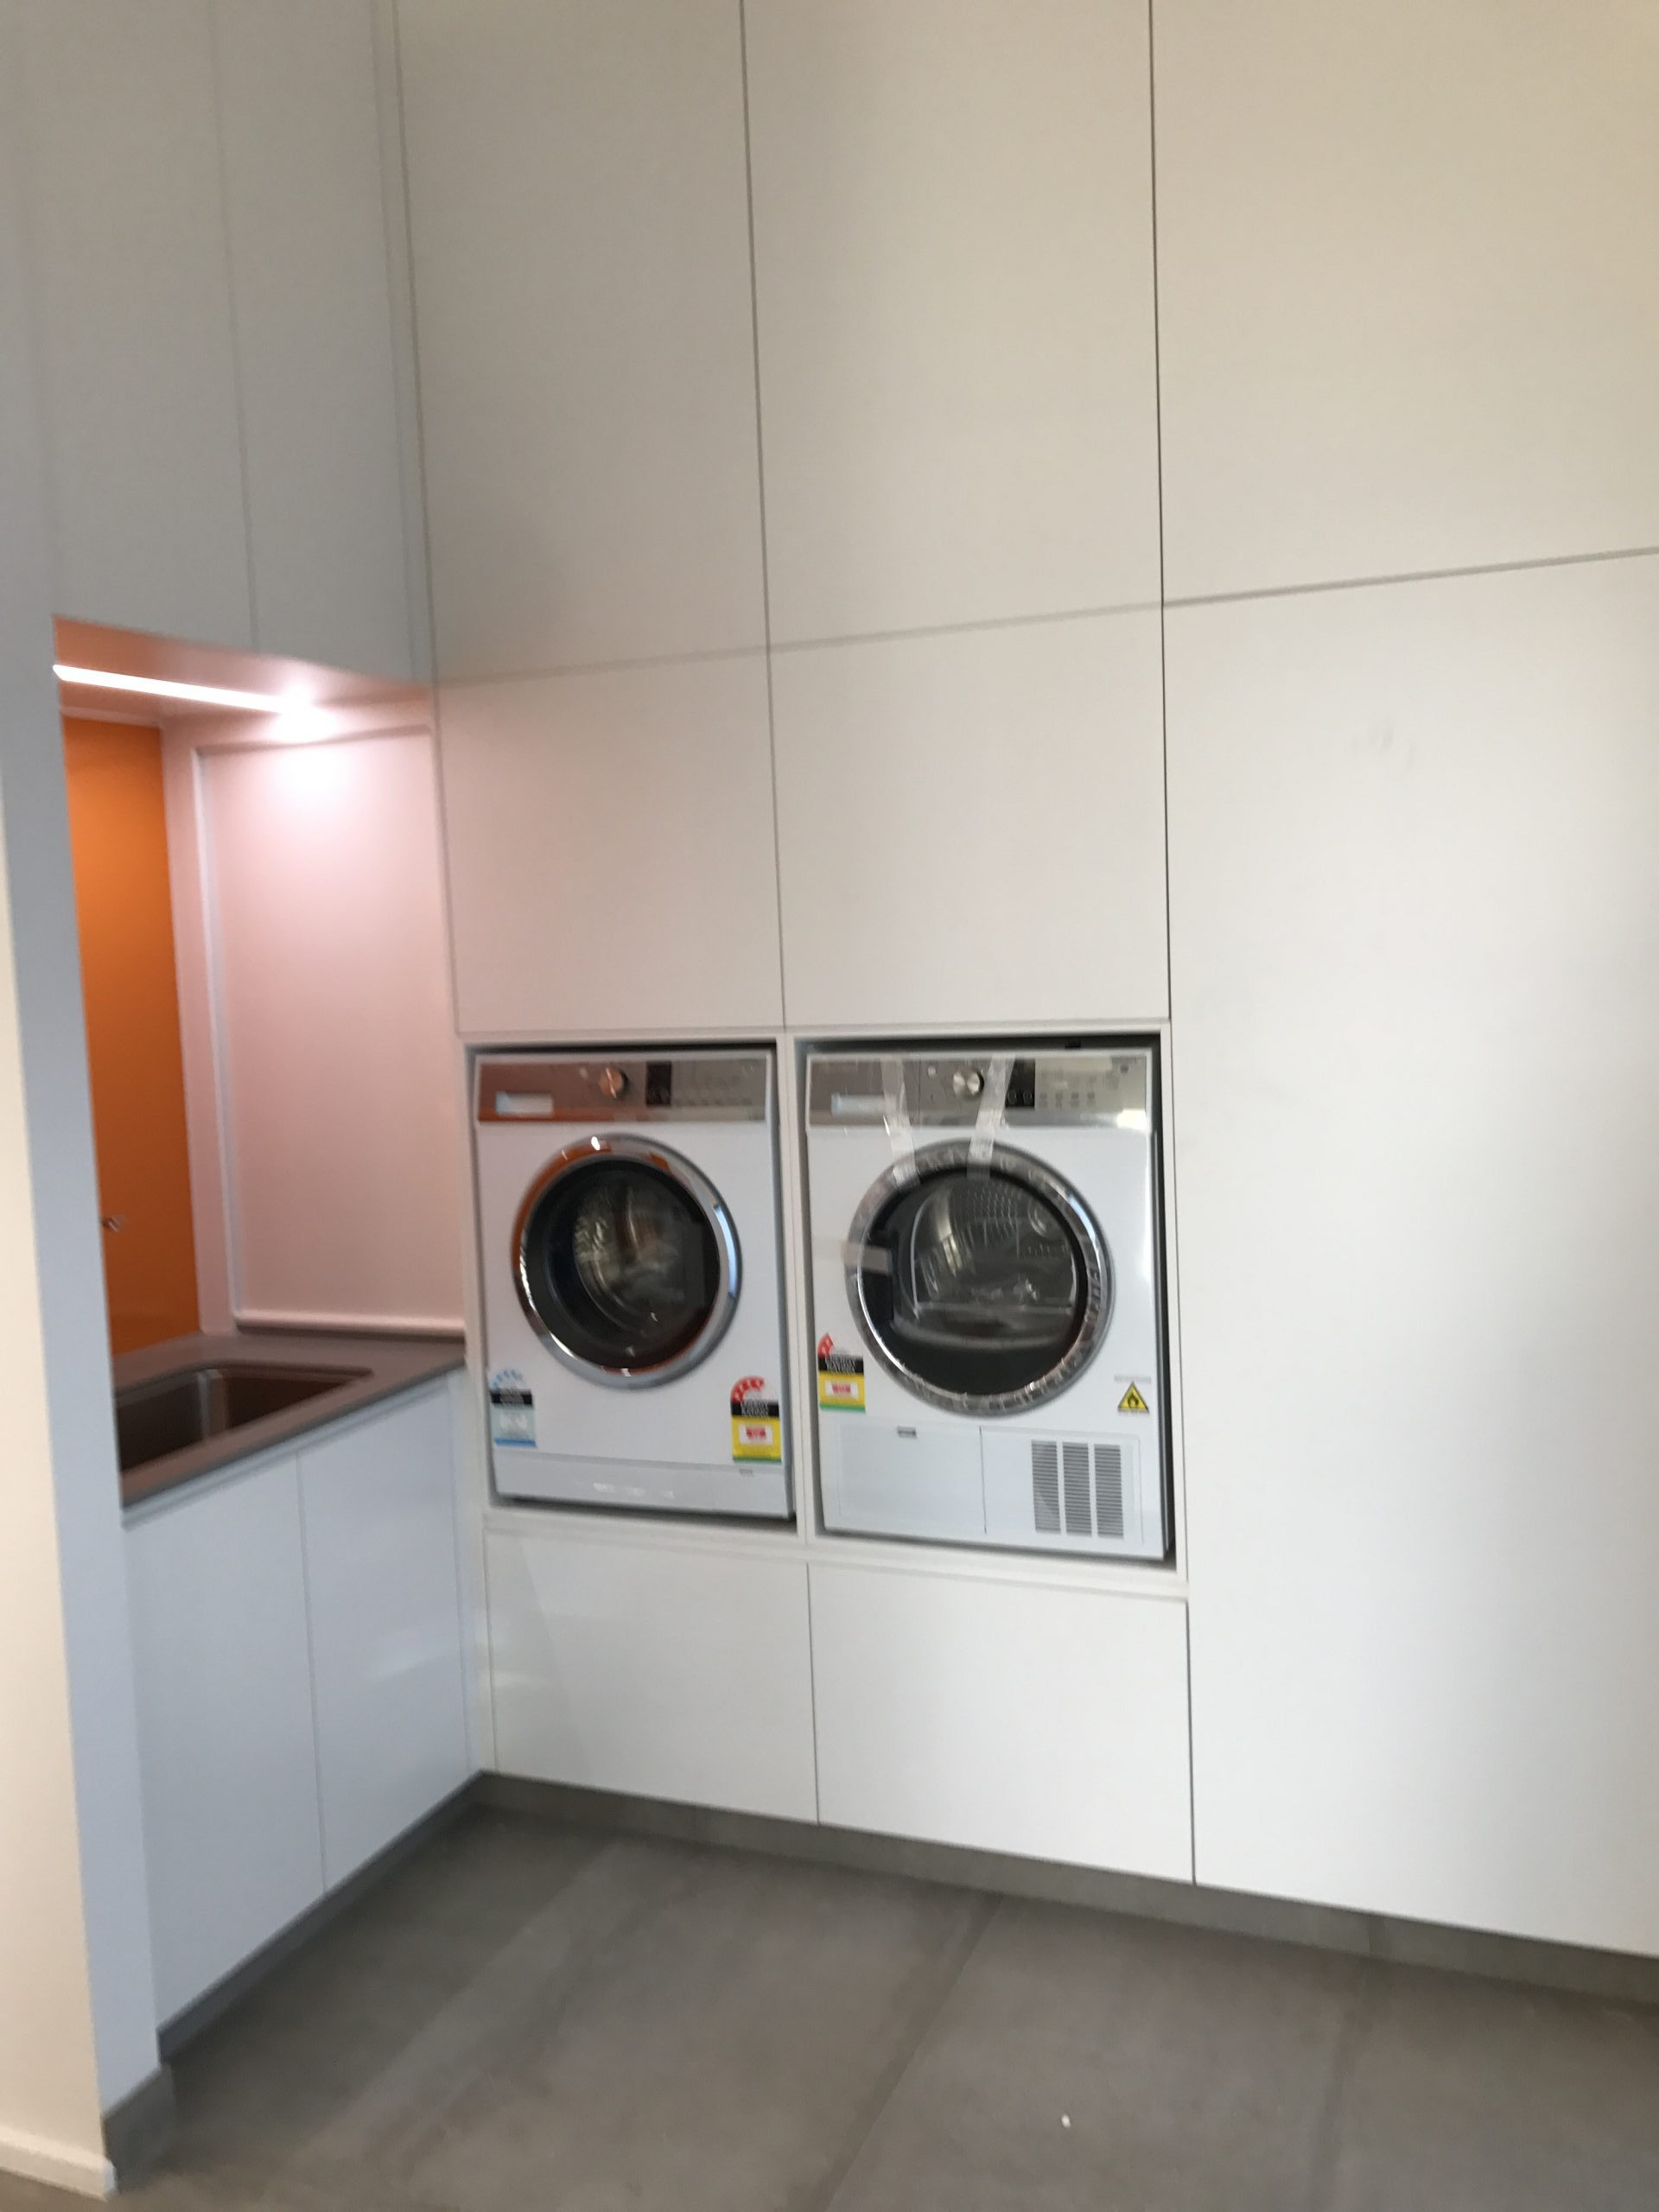 Troy Roberts - PRODUCTS LAUNDRY CABINETS 1ST IMAGE